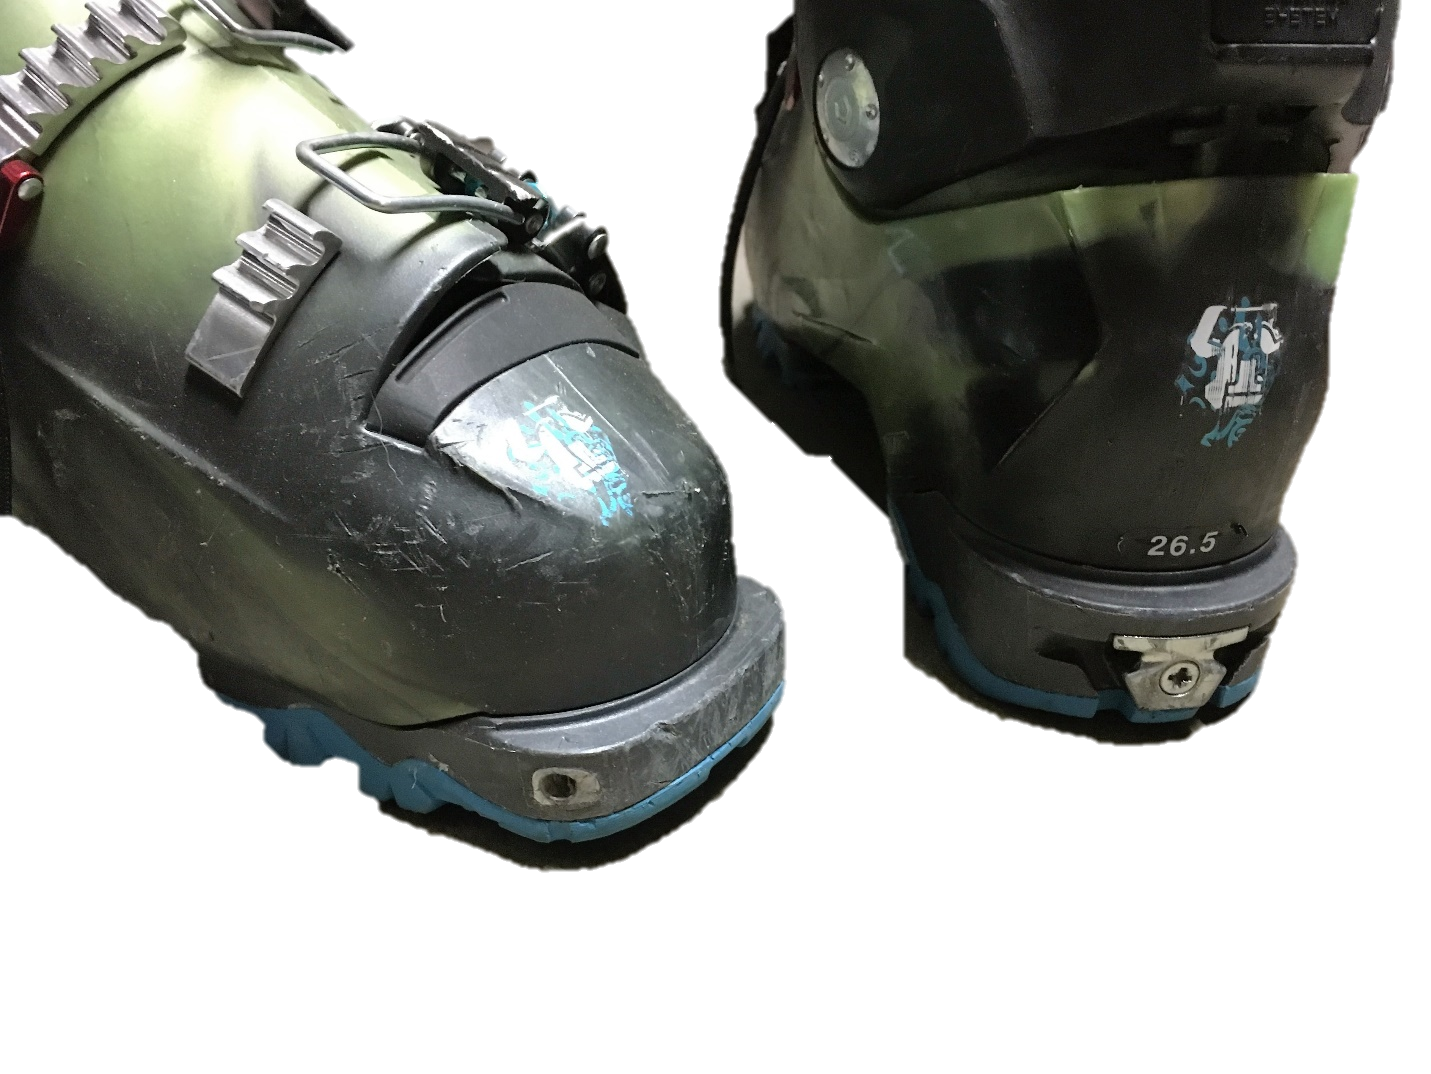 Tecnica Tech binding compatible boot--note the toe and heel pin recepticles